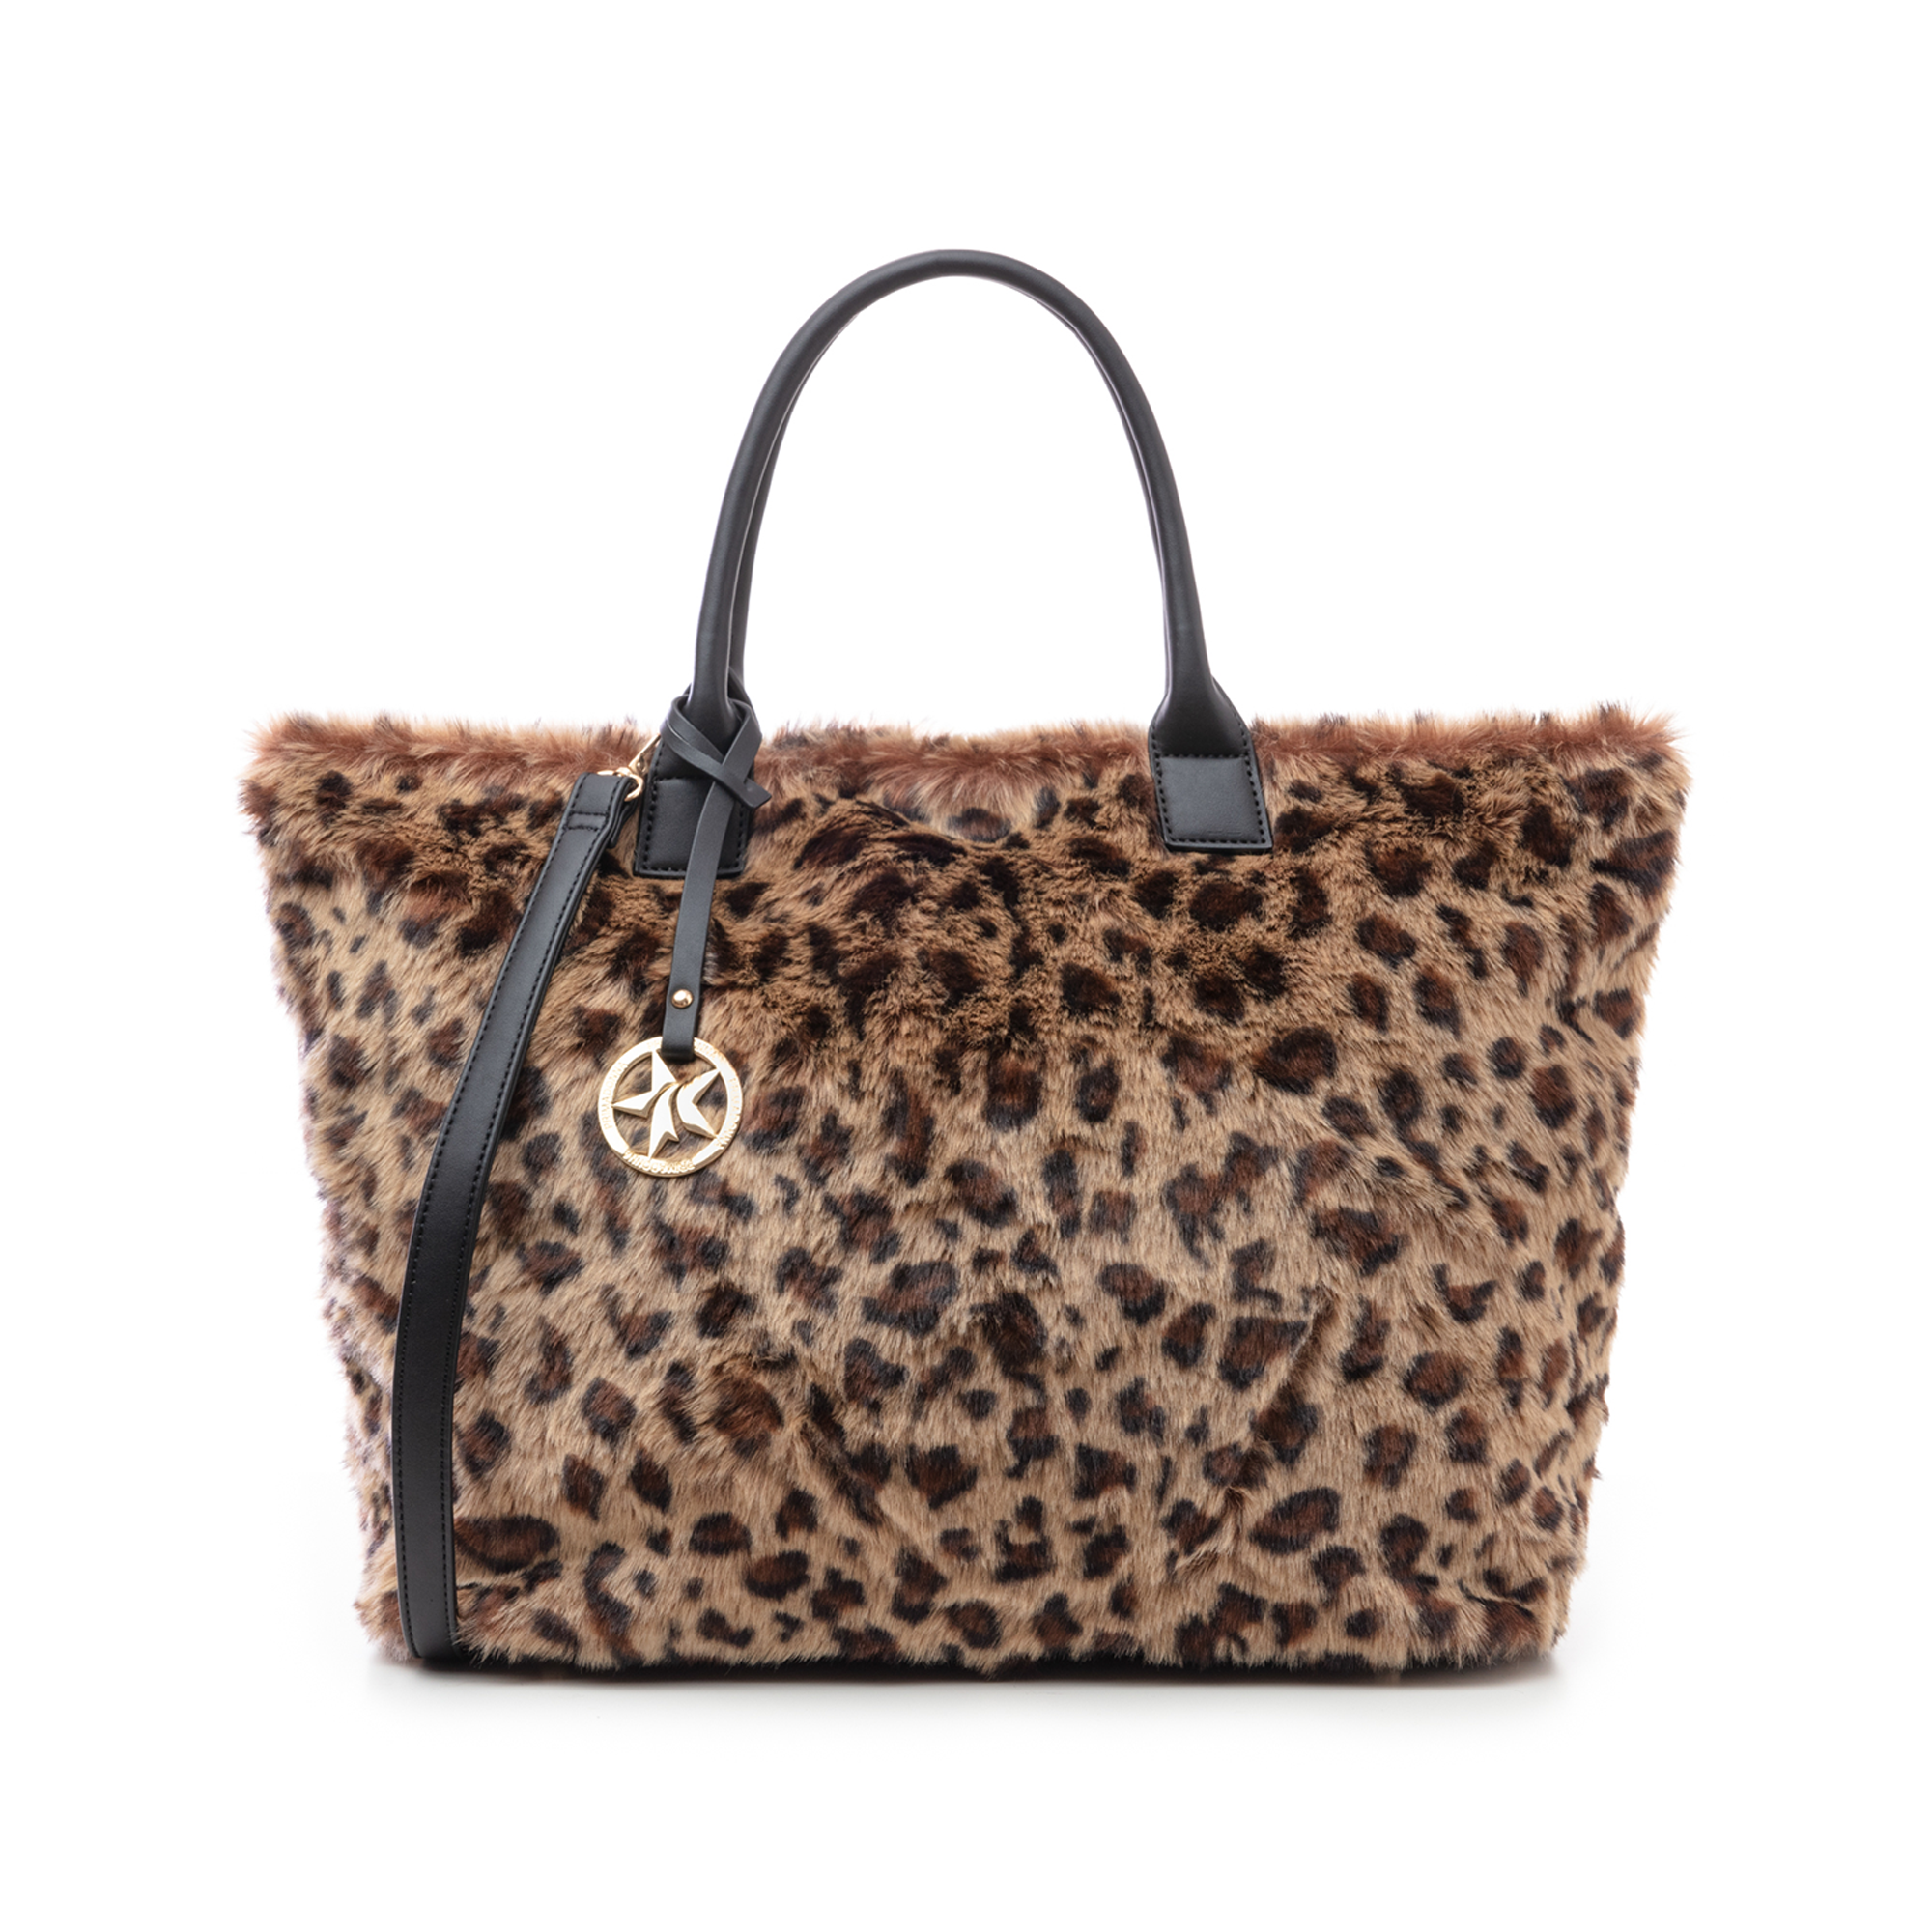 Borsa leopard in eco-fur